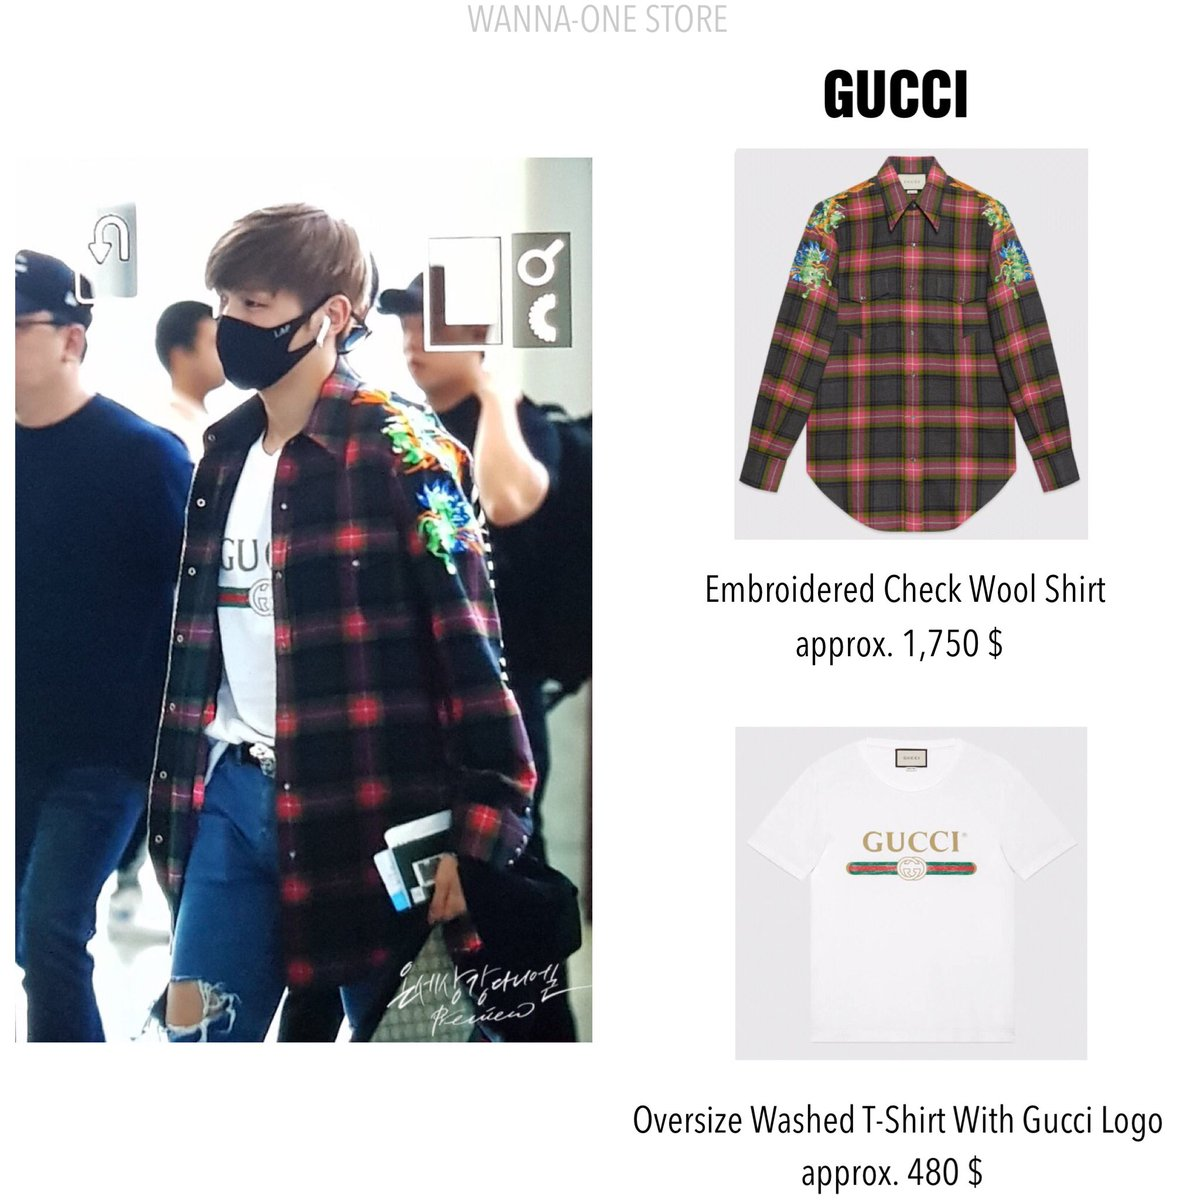 61646e3ec10 https   www.gucci.com us en pr men mens-ready-to-wear mens-t-shirts-polos  oversize-washed-t-shirt-with-gucci-logo-p-440103X3F059045 position 48 listName   ...